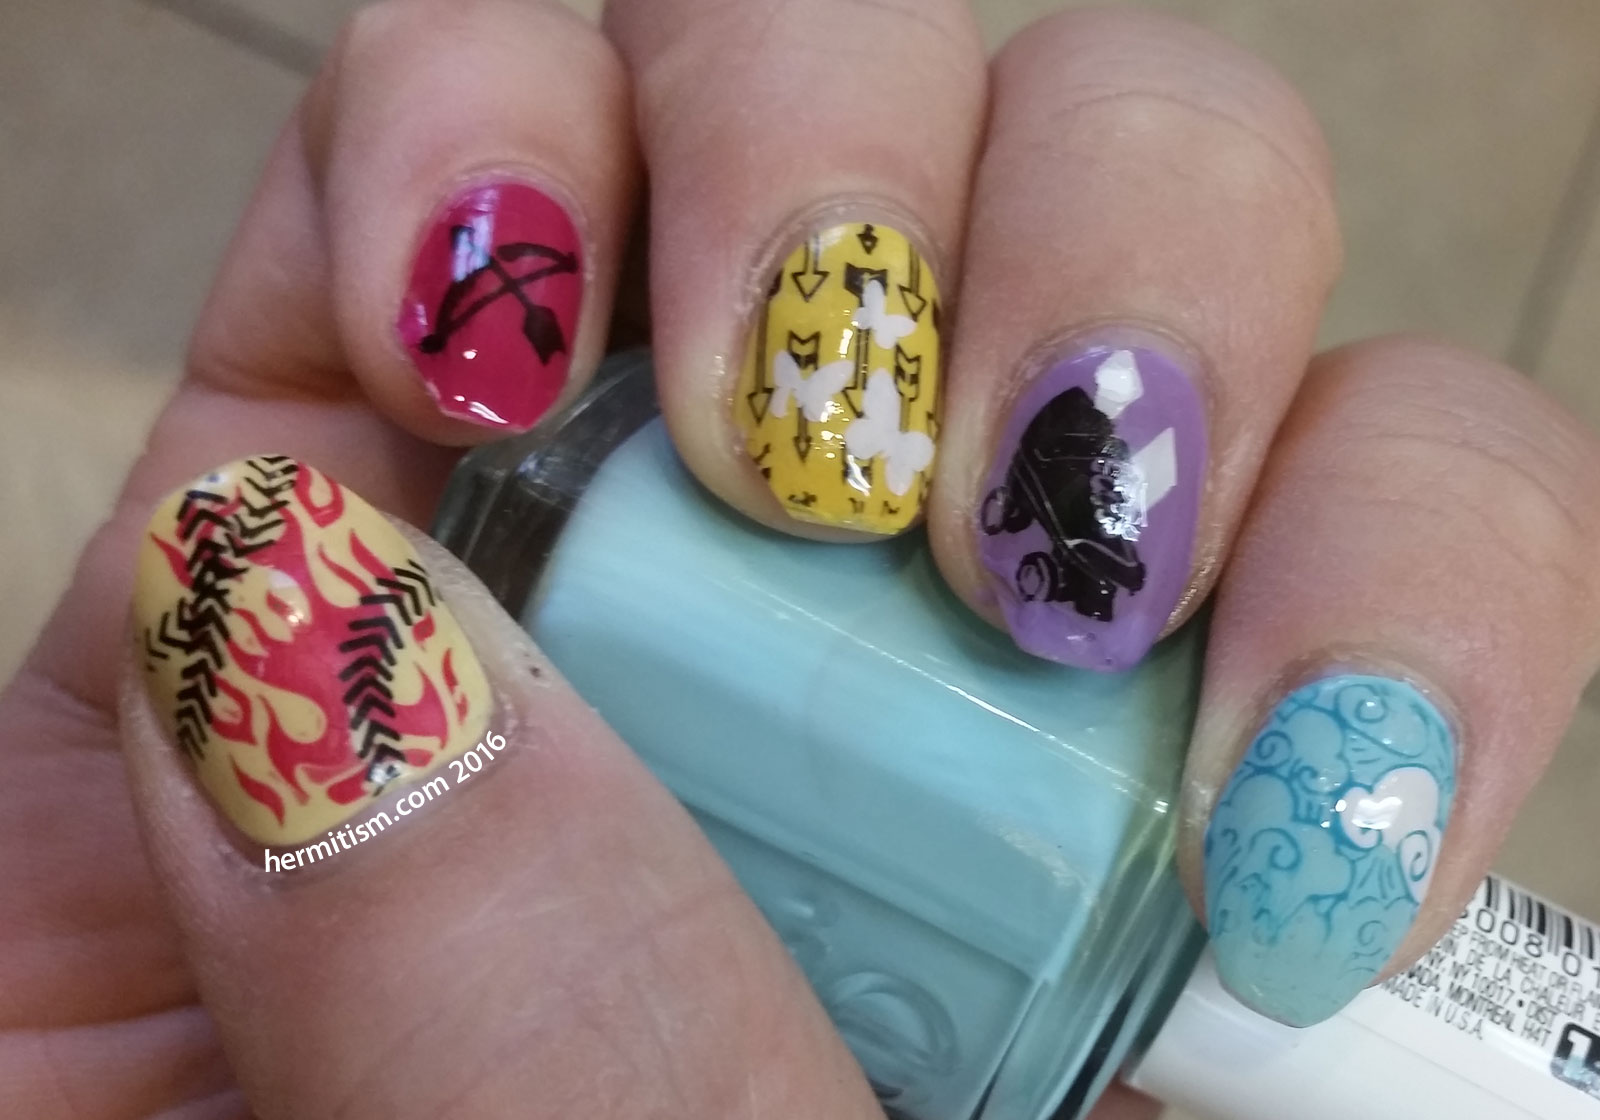 E is for Equestria Girls - ABC Nail Art Challenge - Hermit Werds